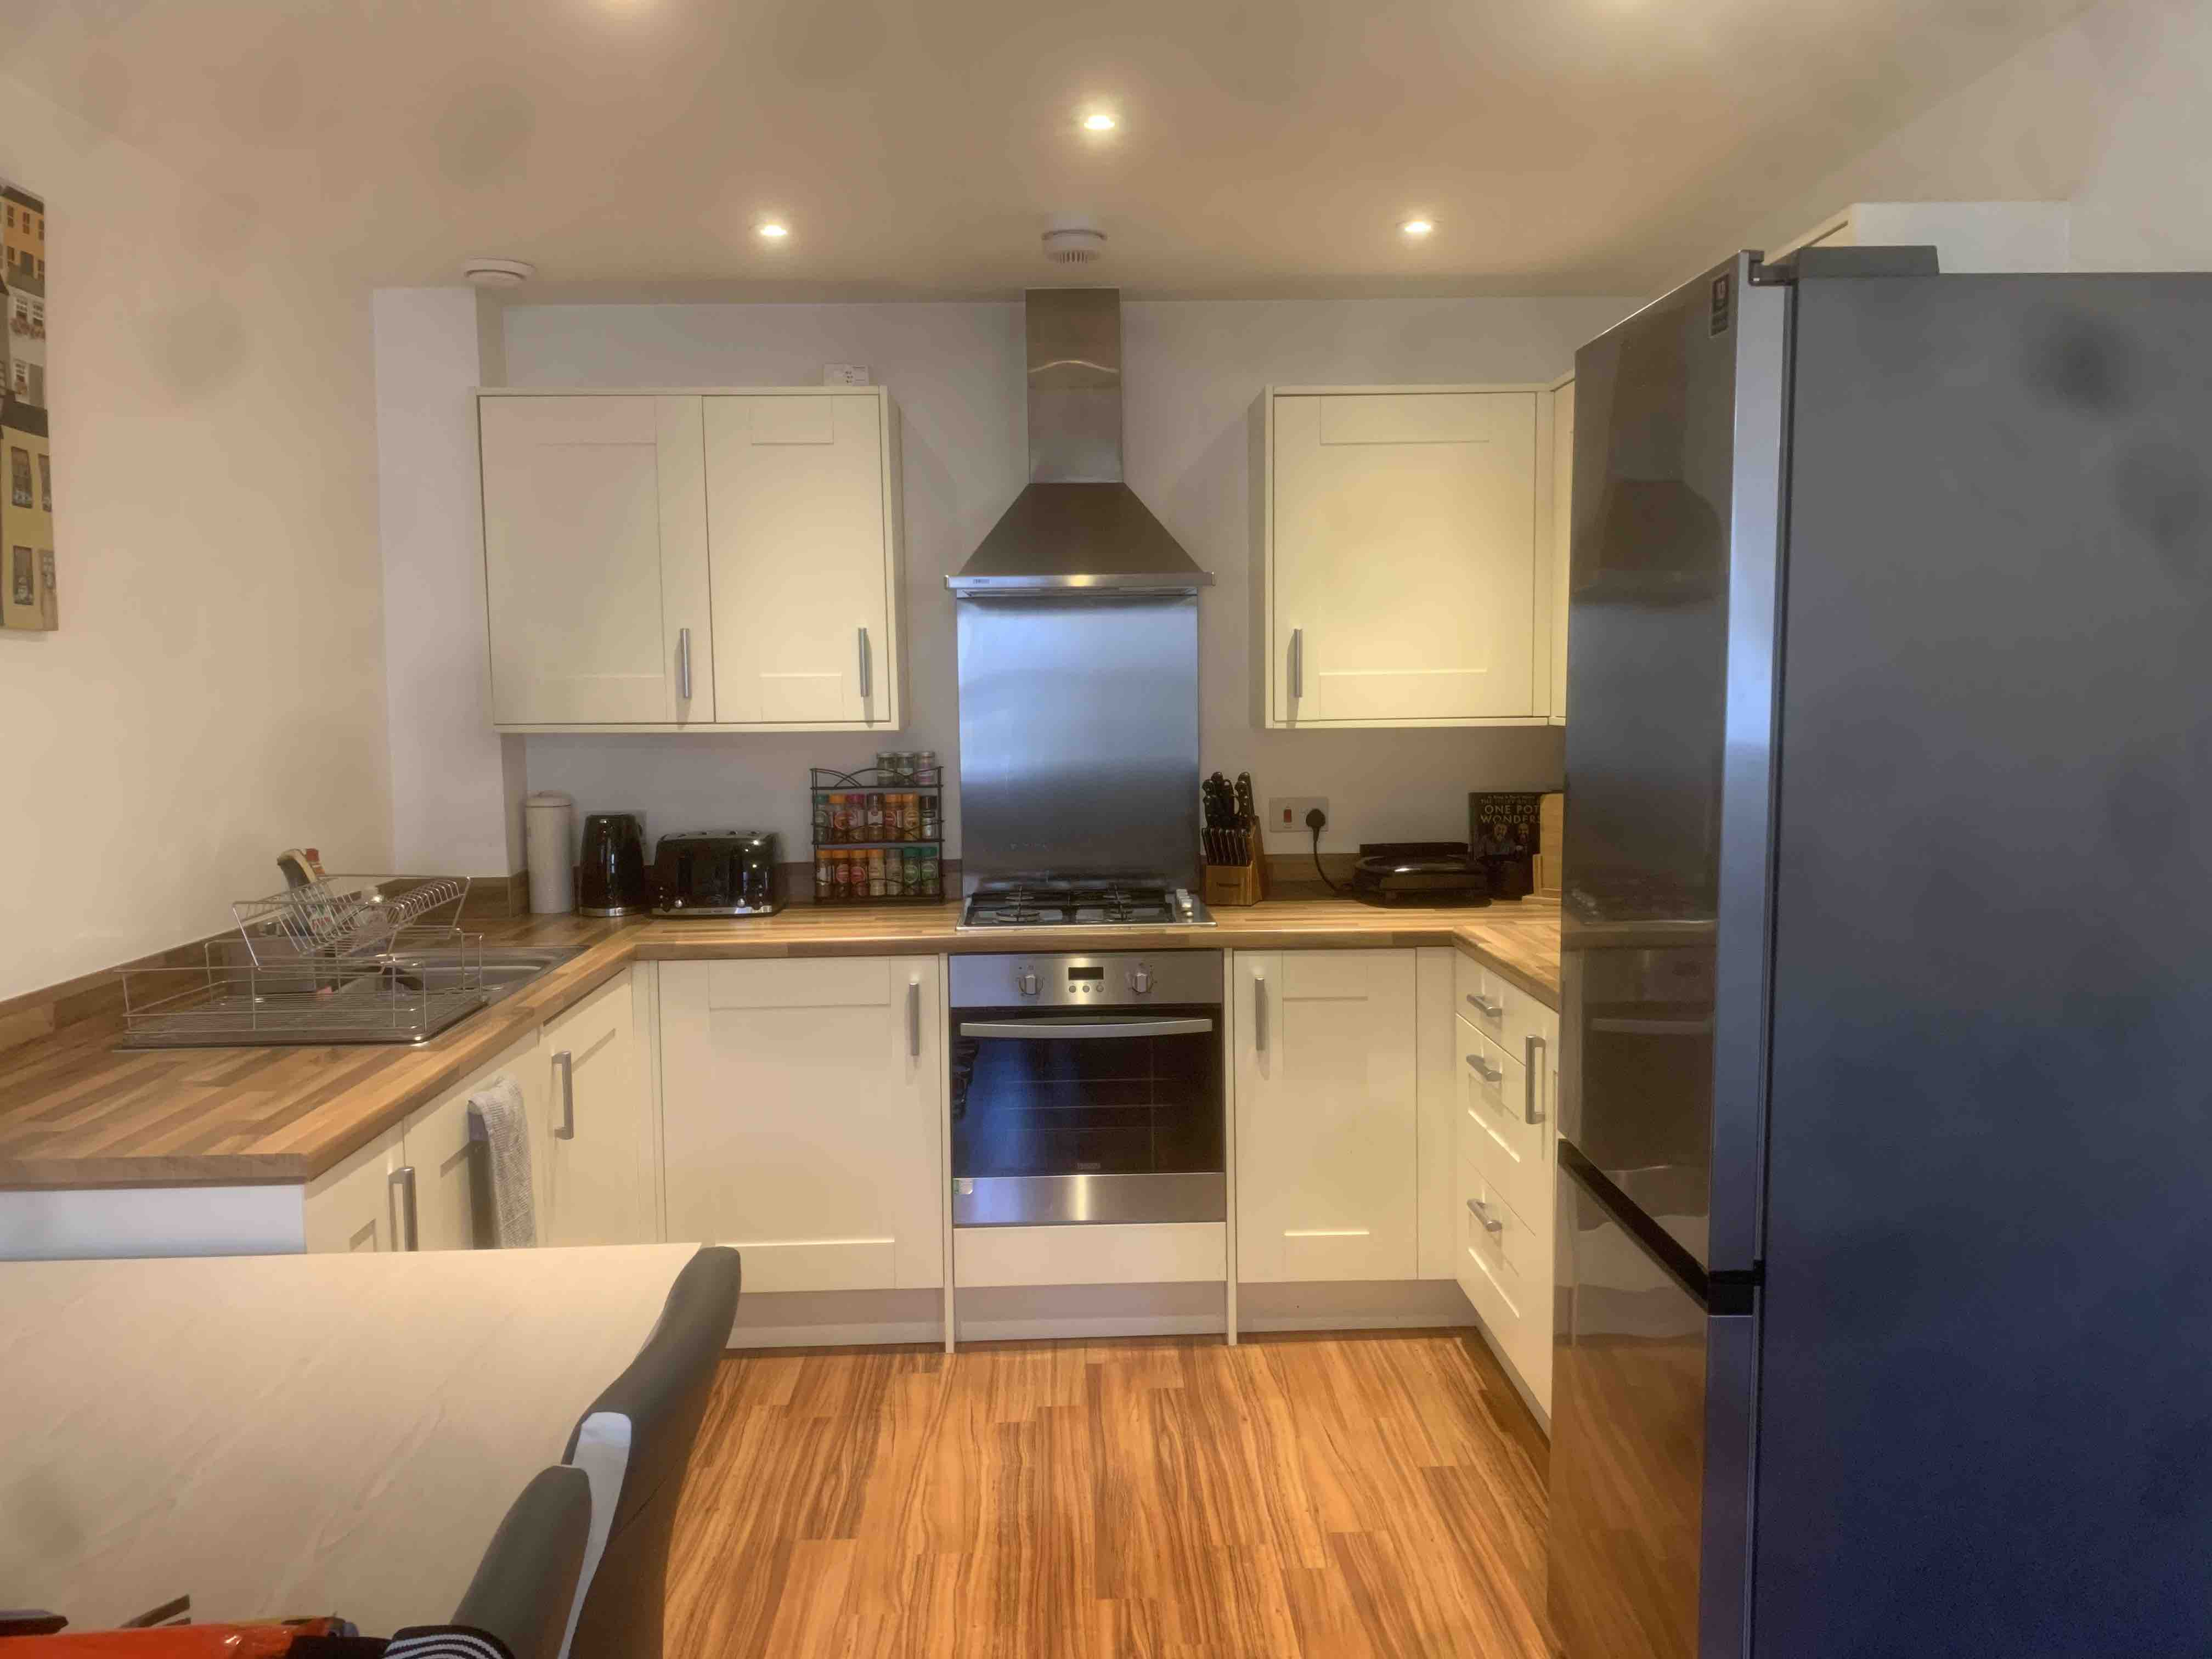 1 room in Bromley Common and Keston, Bromley, BR2 9TS RoomsLocal image